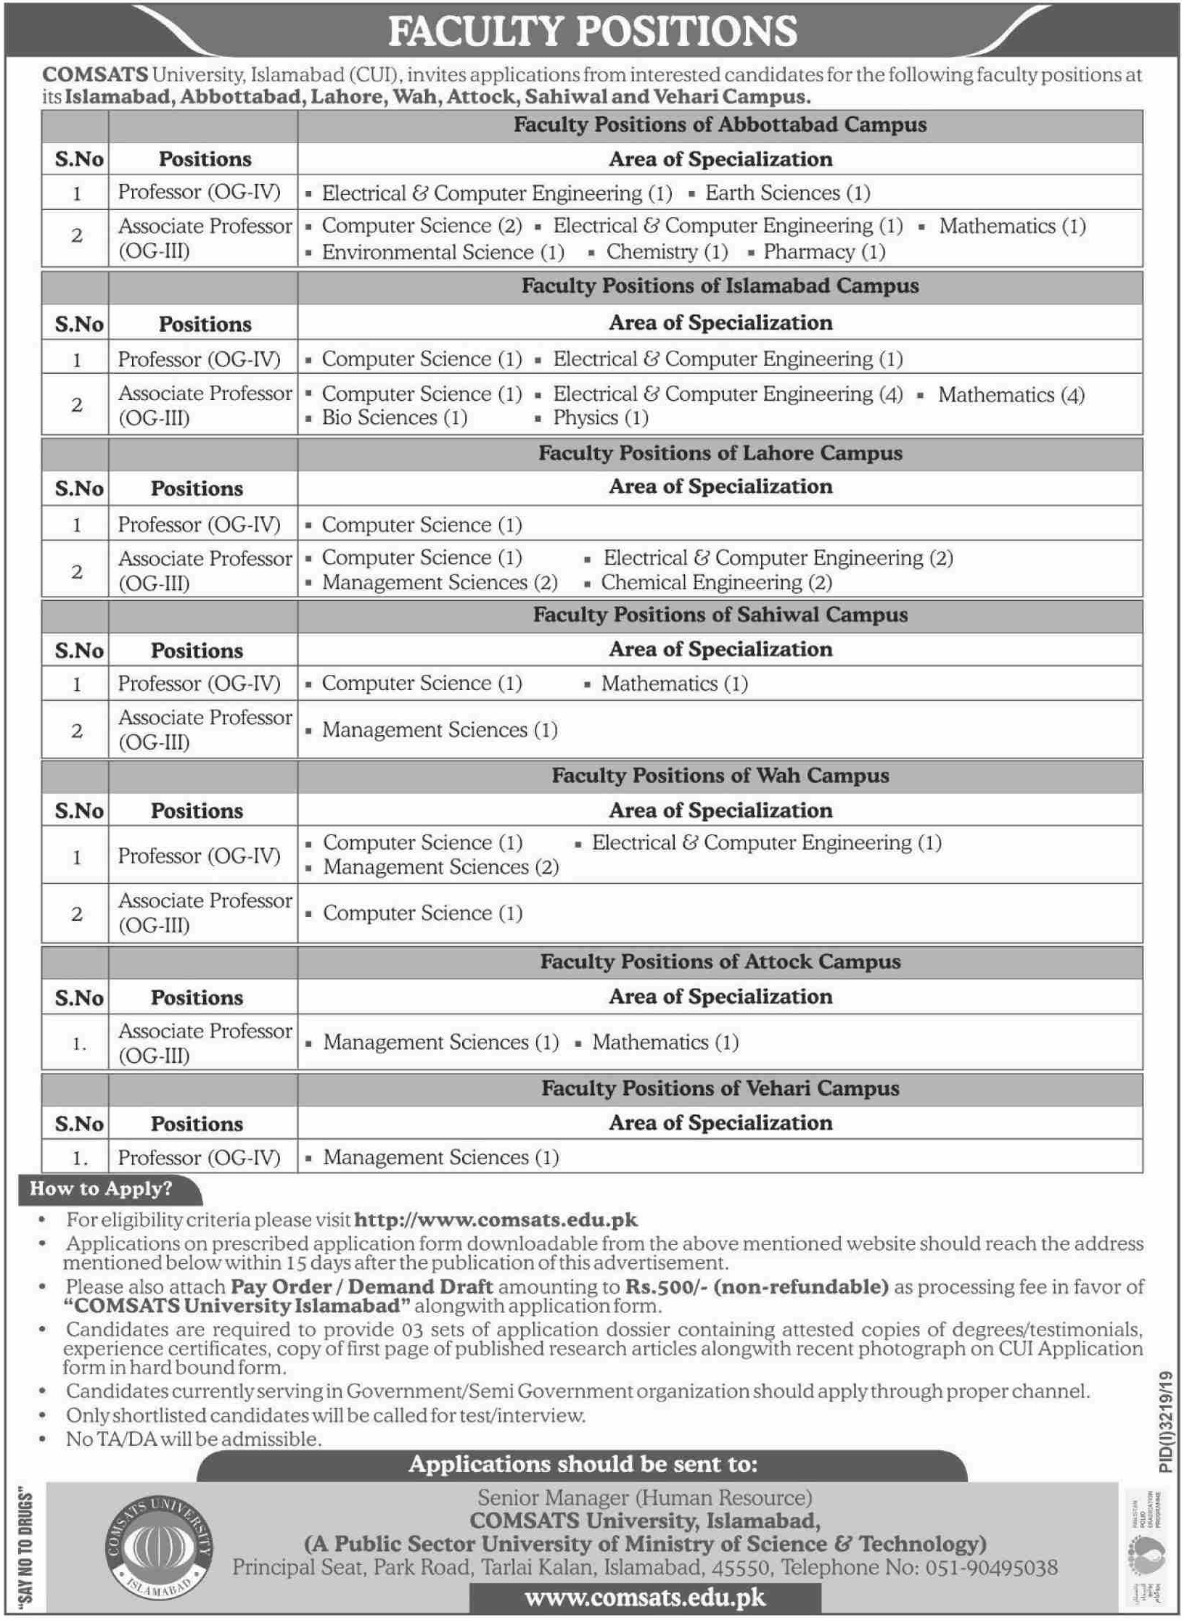 COMSATS University Islamabad CUI Jobs 2019